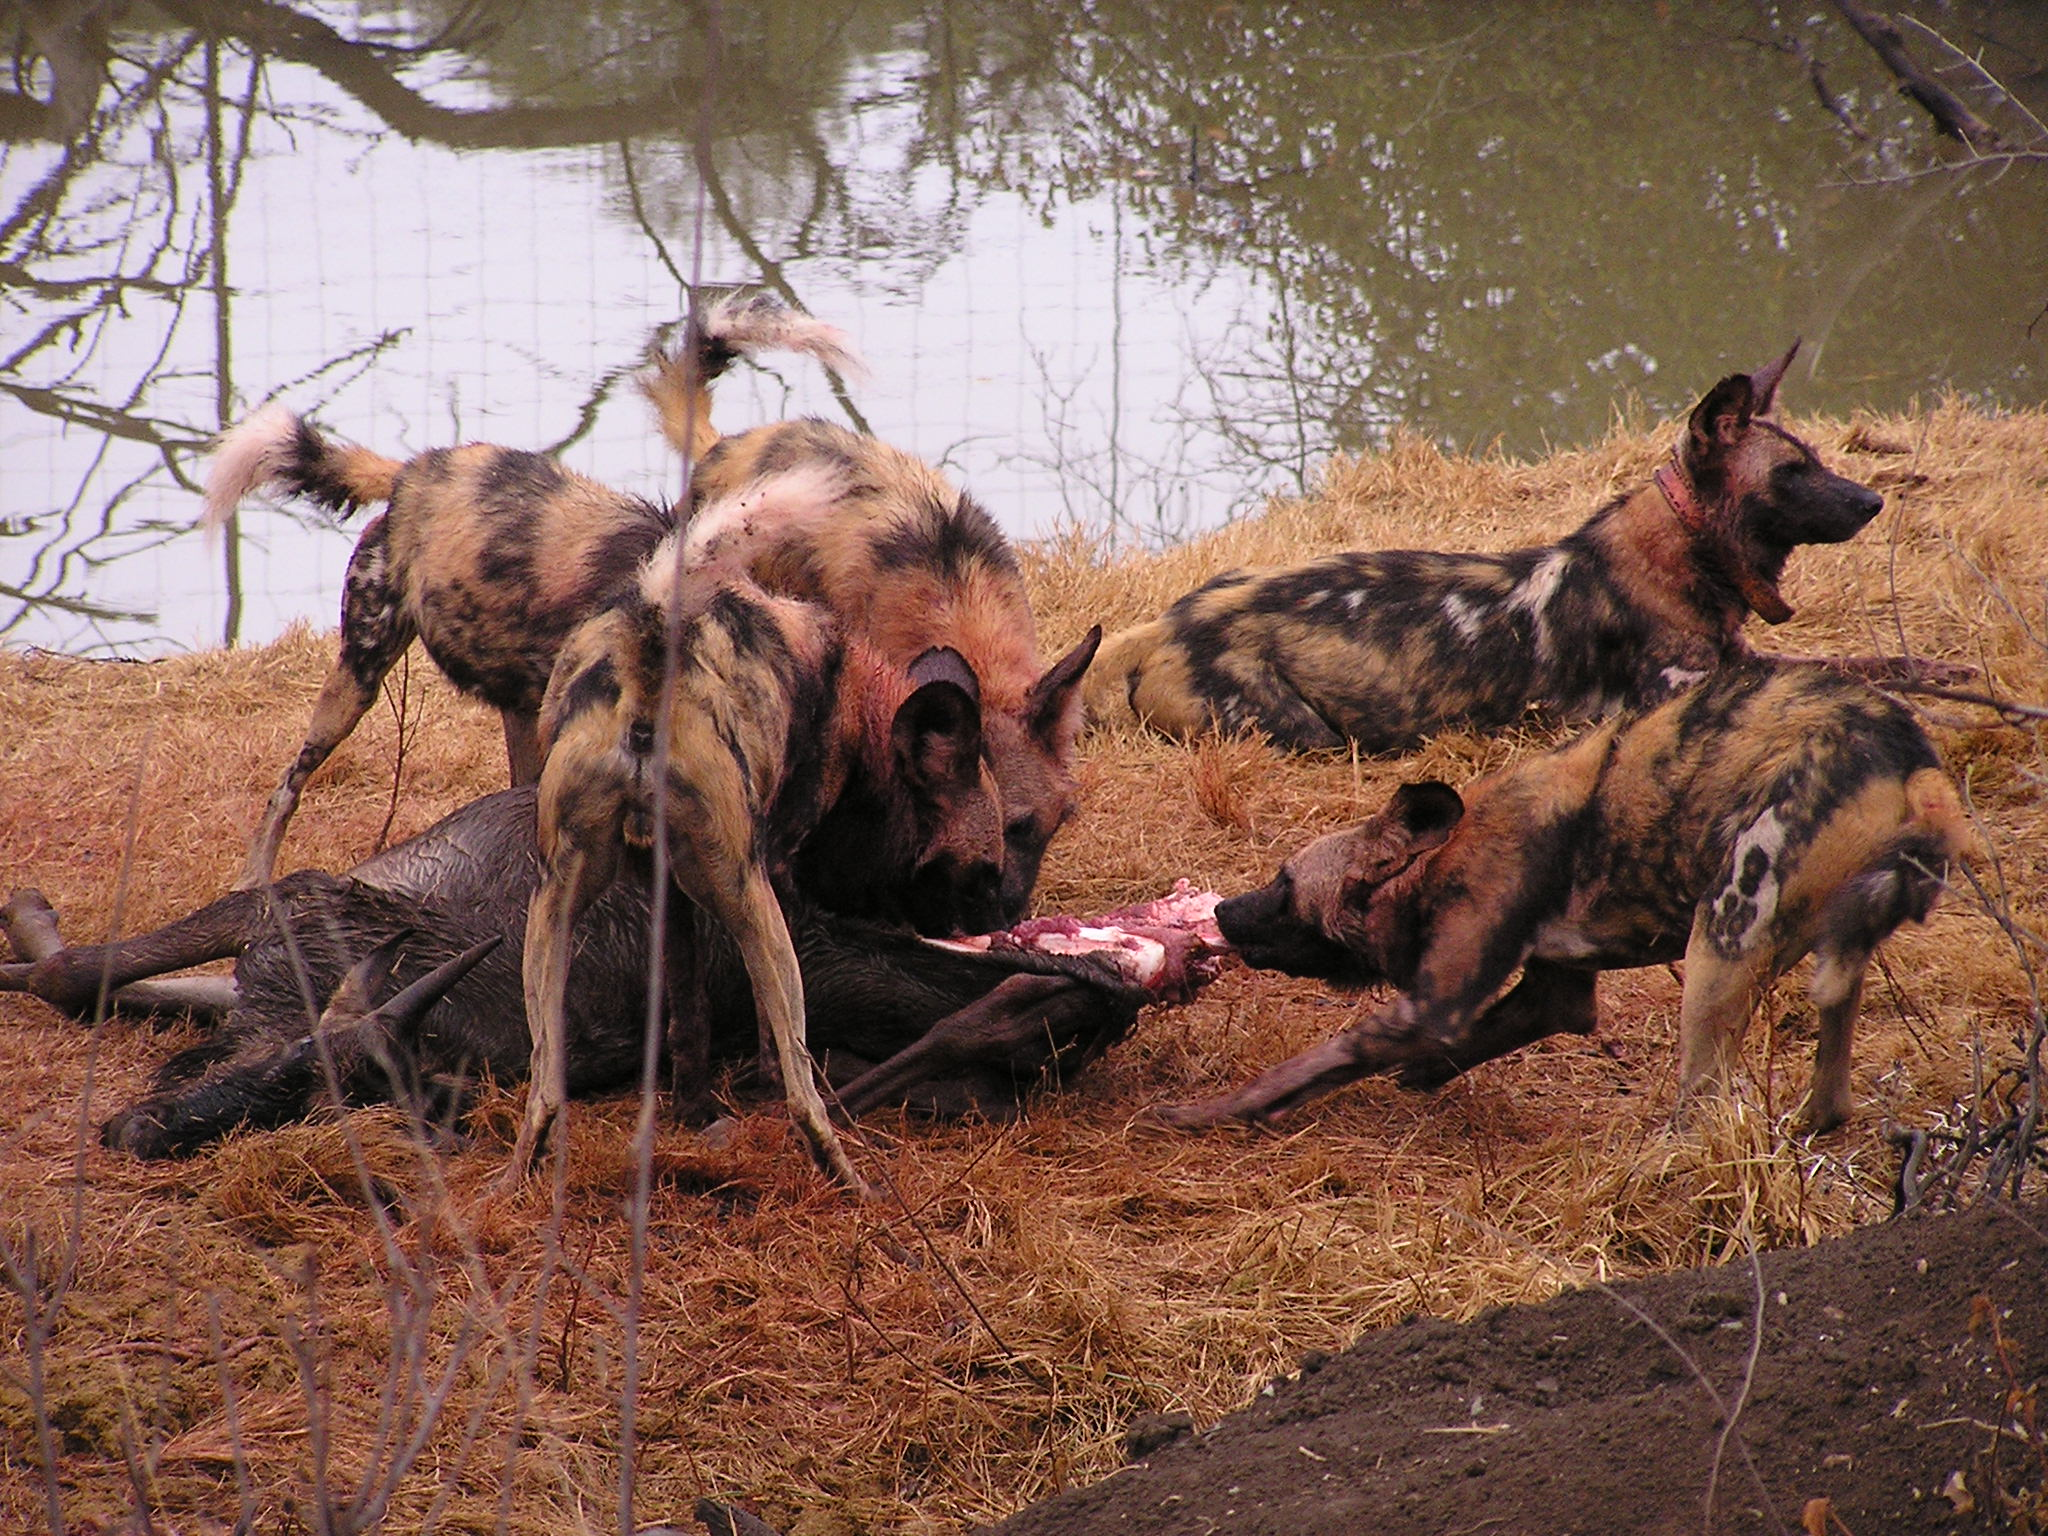 African wild dog pack consuming a blue wildebeest, Madikwe Game Reserve, South Africa    Masteraah  /Wikimedia Commons  [ CC BY-SA 3.0 ]